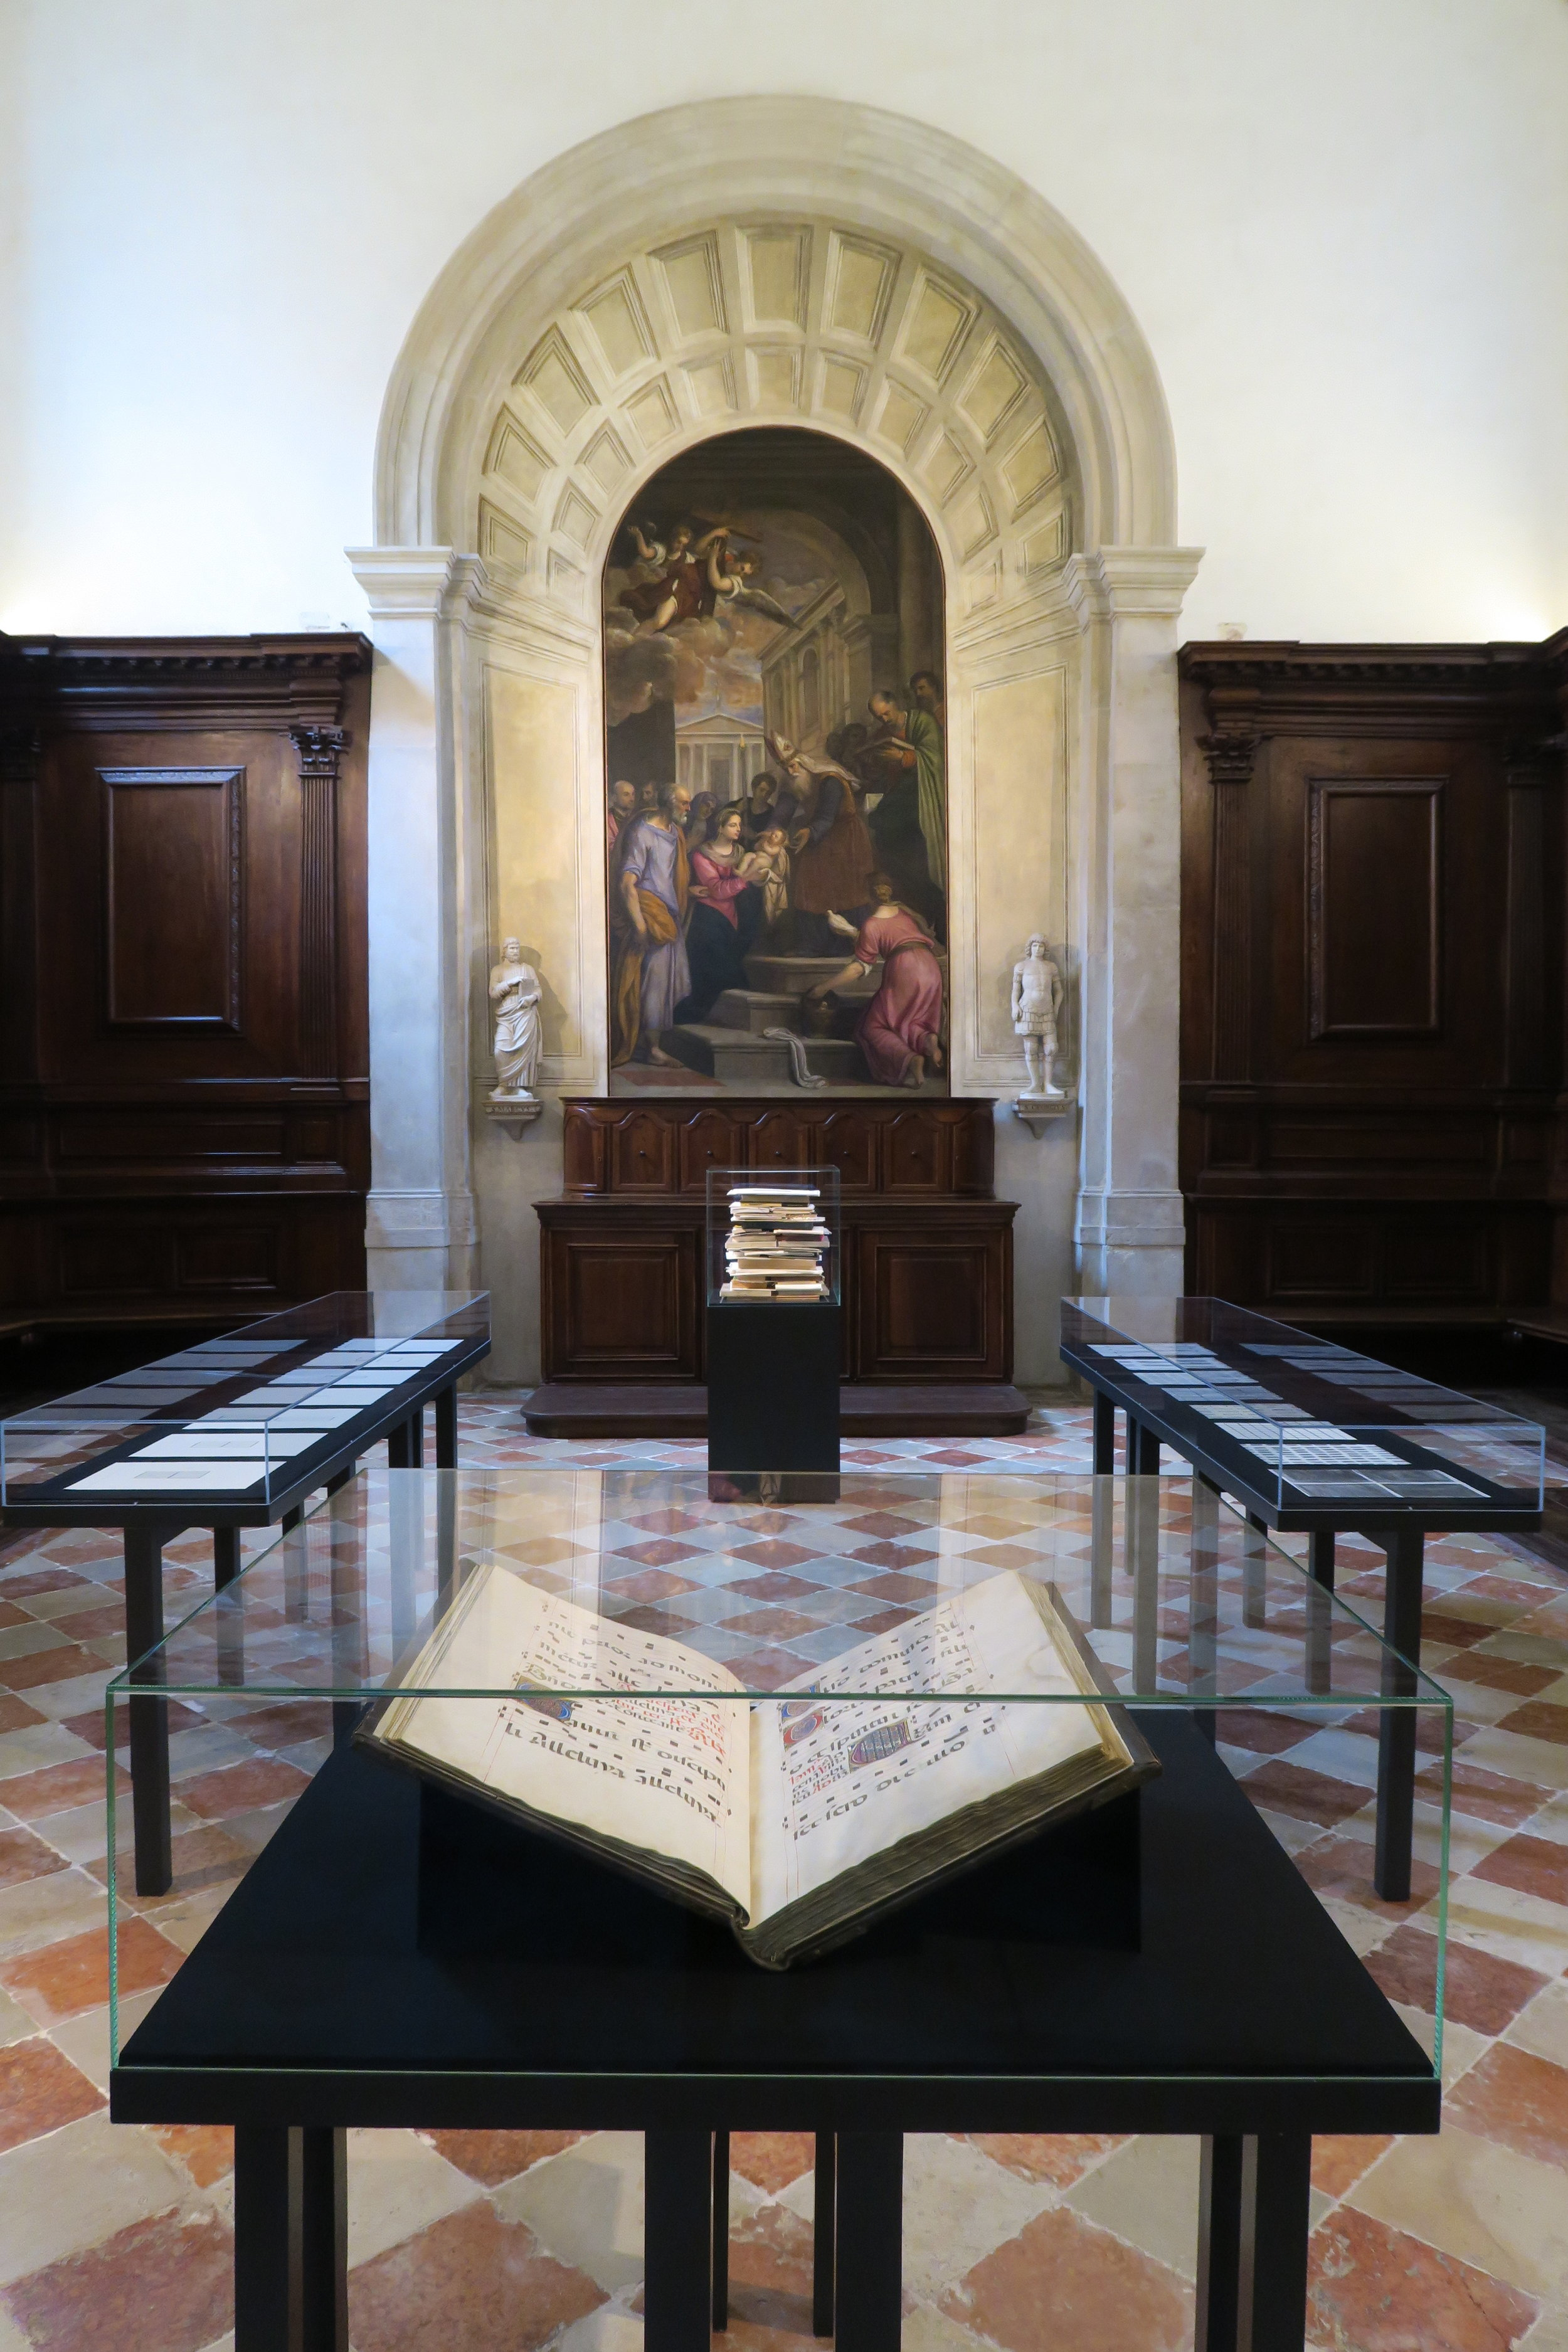 Installation of Linda Karshan's drawing in the San Giorgio Maggiore Sacristy, August 25, 2018.